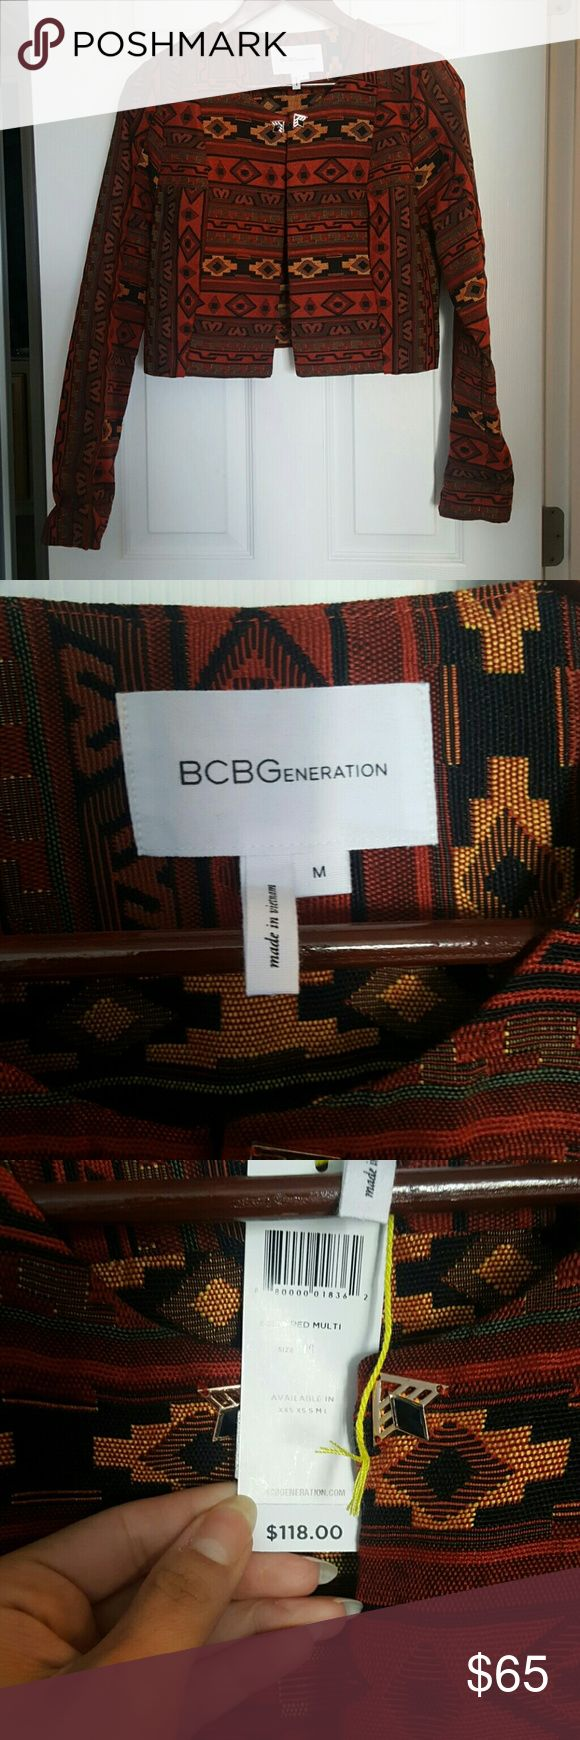 BCBGeneration jacket with aztec print New with tags. Very well made. See matching skirt in next listing. BCBGeneration Jackets & Coats Blazers